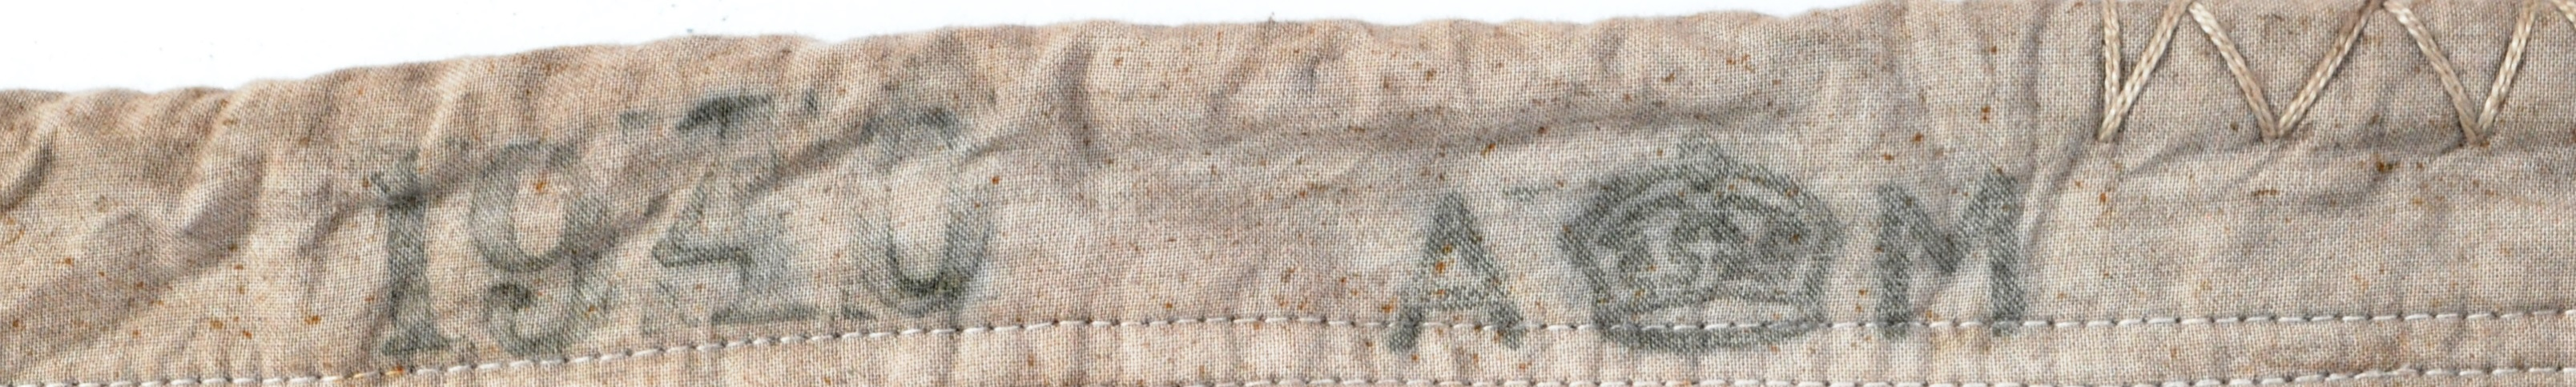 WWII SECOND WORLD WAR TYPE RAF AIRFIELD FLAG - DEBDEN - Image 7 of 8